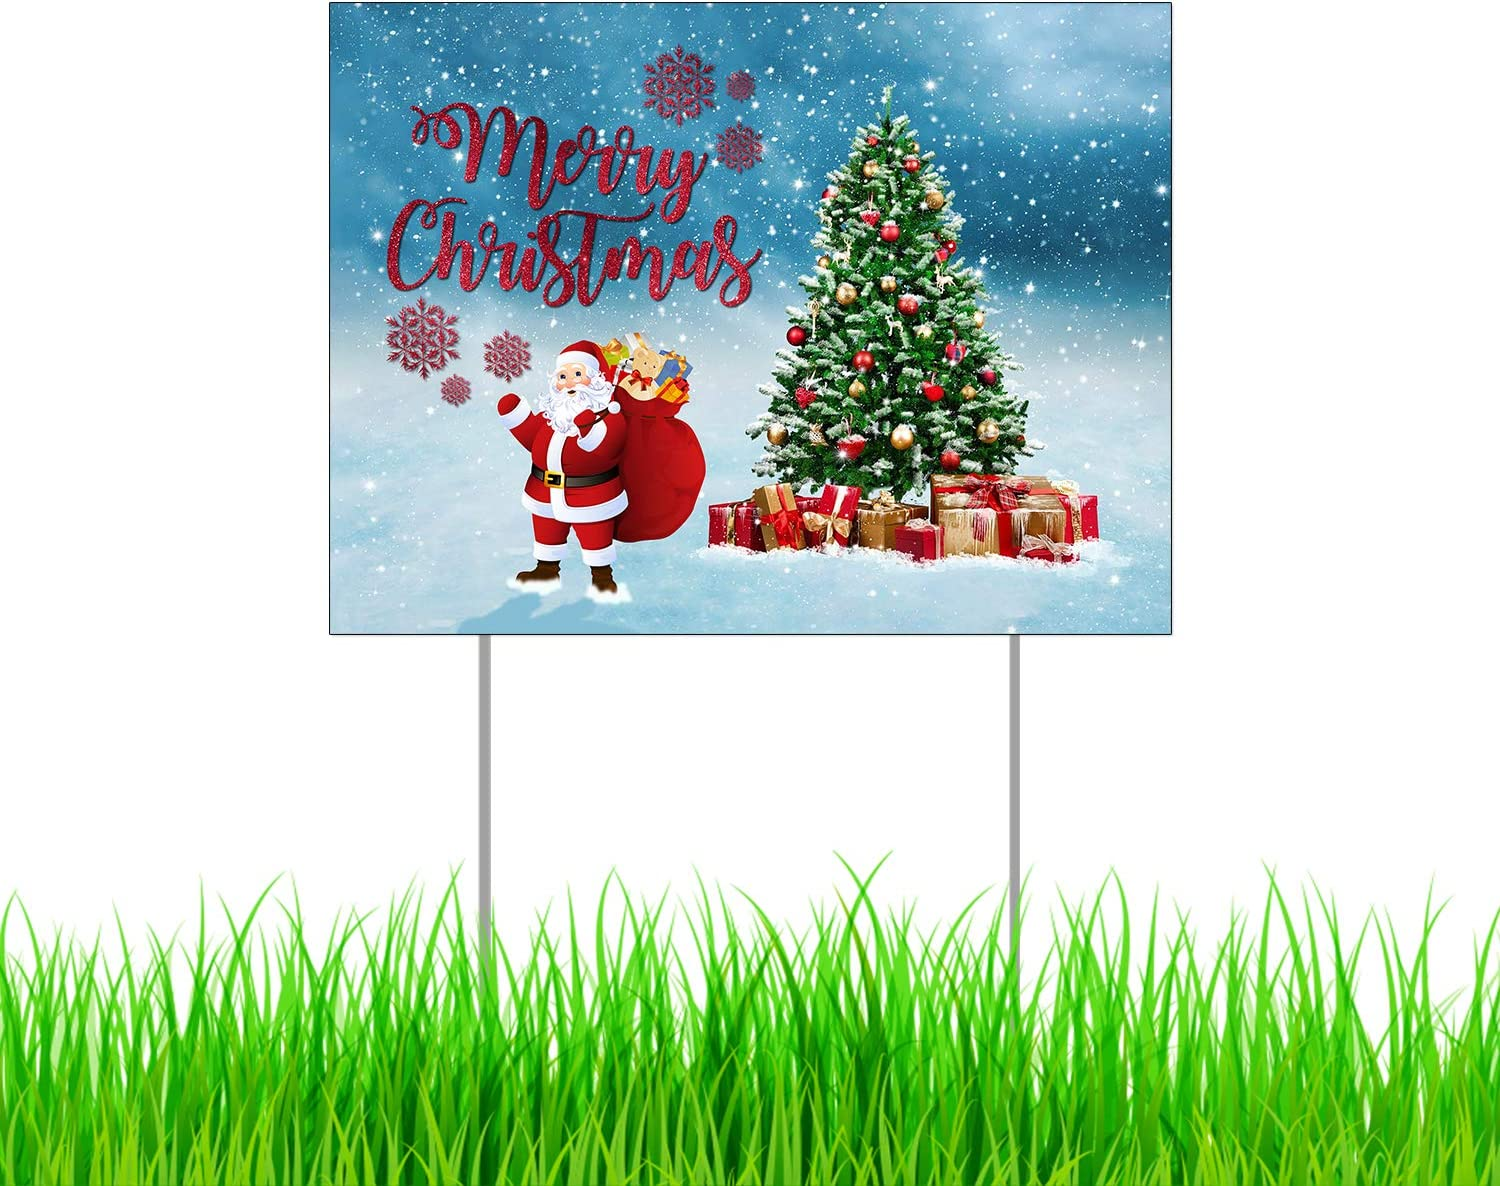 "Merry Christmas Yard Sign with Metal Stakes, Non-Reflective UV Print Corrugated Plastic Sheets, Indoor & Outdoor Holiday Season Garden Lawn Signs (24"" X 18"", Single Sided Print)"